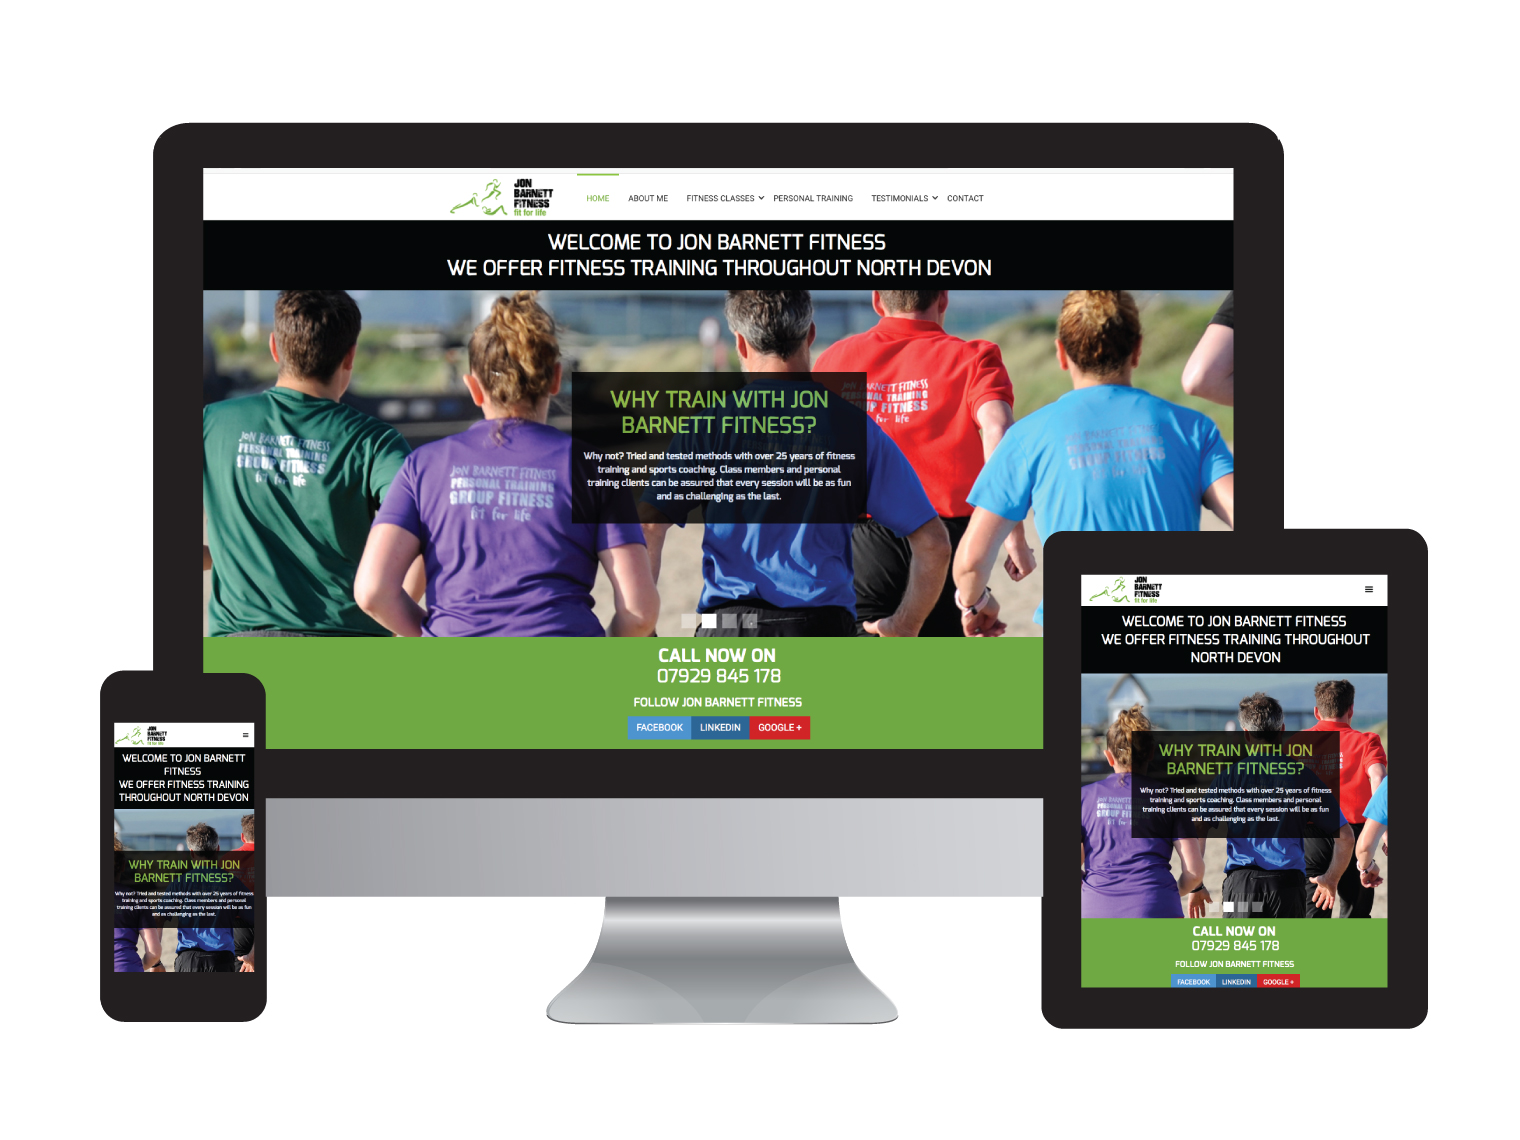 Jon Barnett Fitness - Design in the Shires | Web Design Worcestershire & Herefordshire | Graphic Design Worcestershire & Herefordshire | e-Commerce Website Design | Website Designers Malvern, Worcestershire & Herefordshire | Design in the Shires